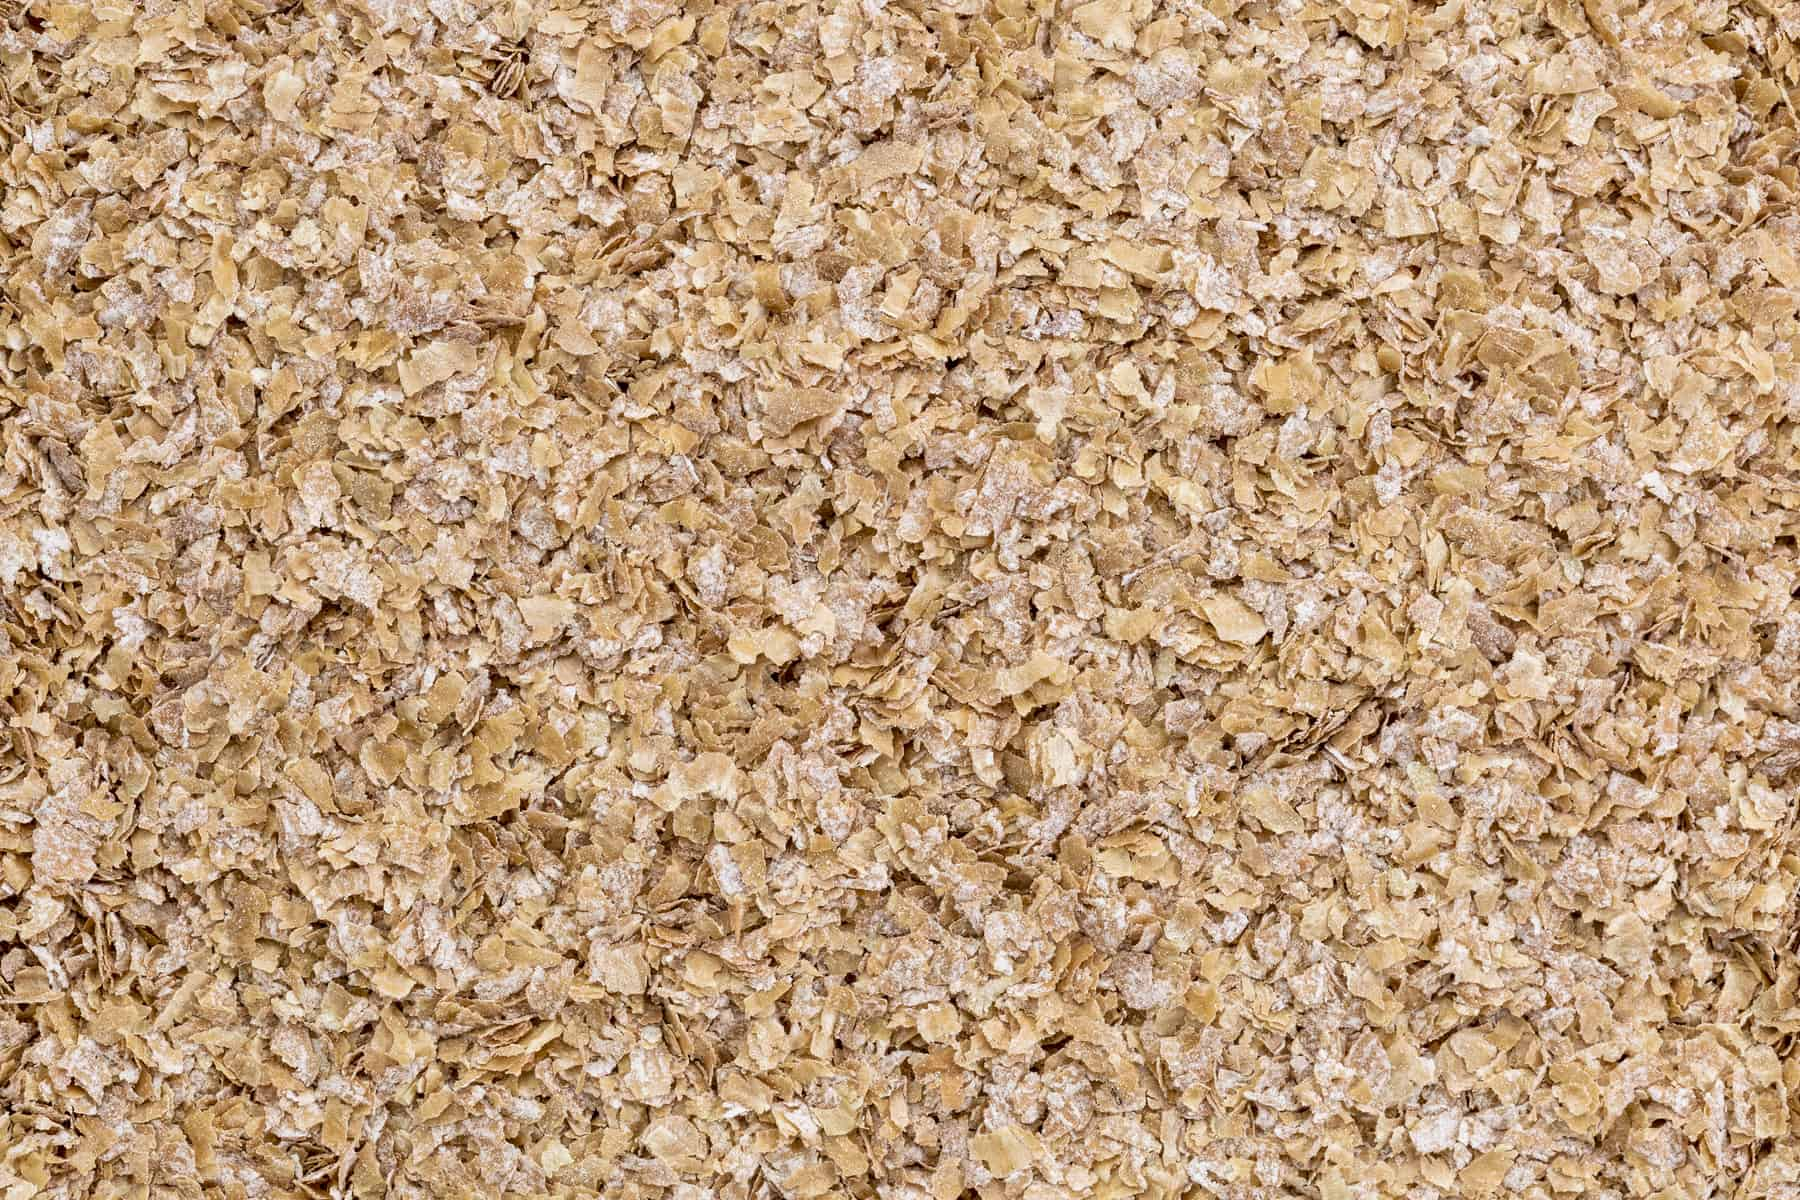 What Are 'Wheat Middlings' in Horse Feed? – The Horse